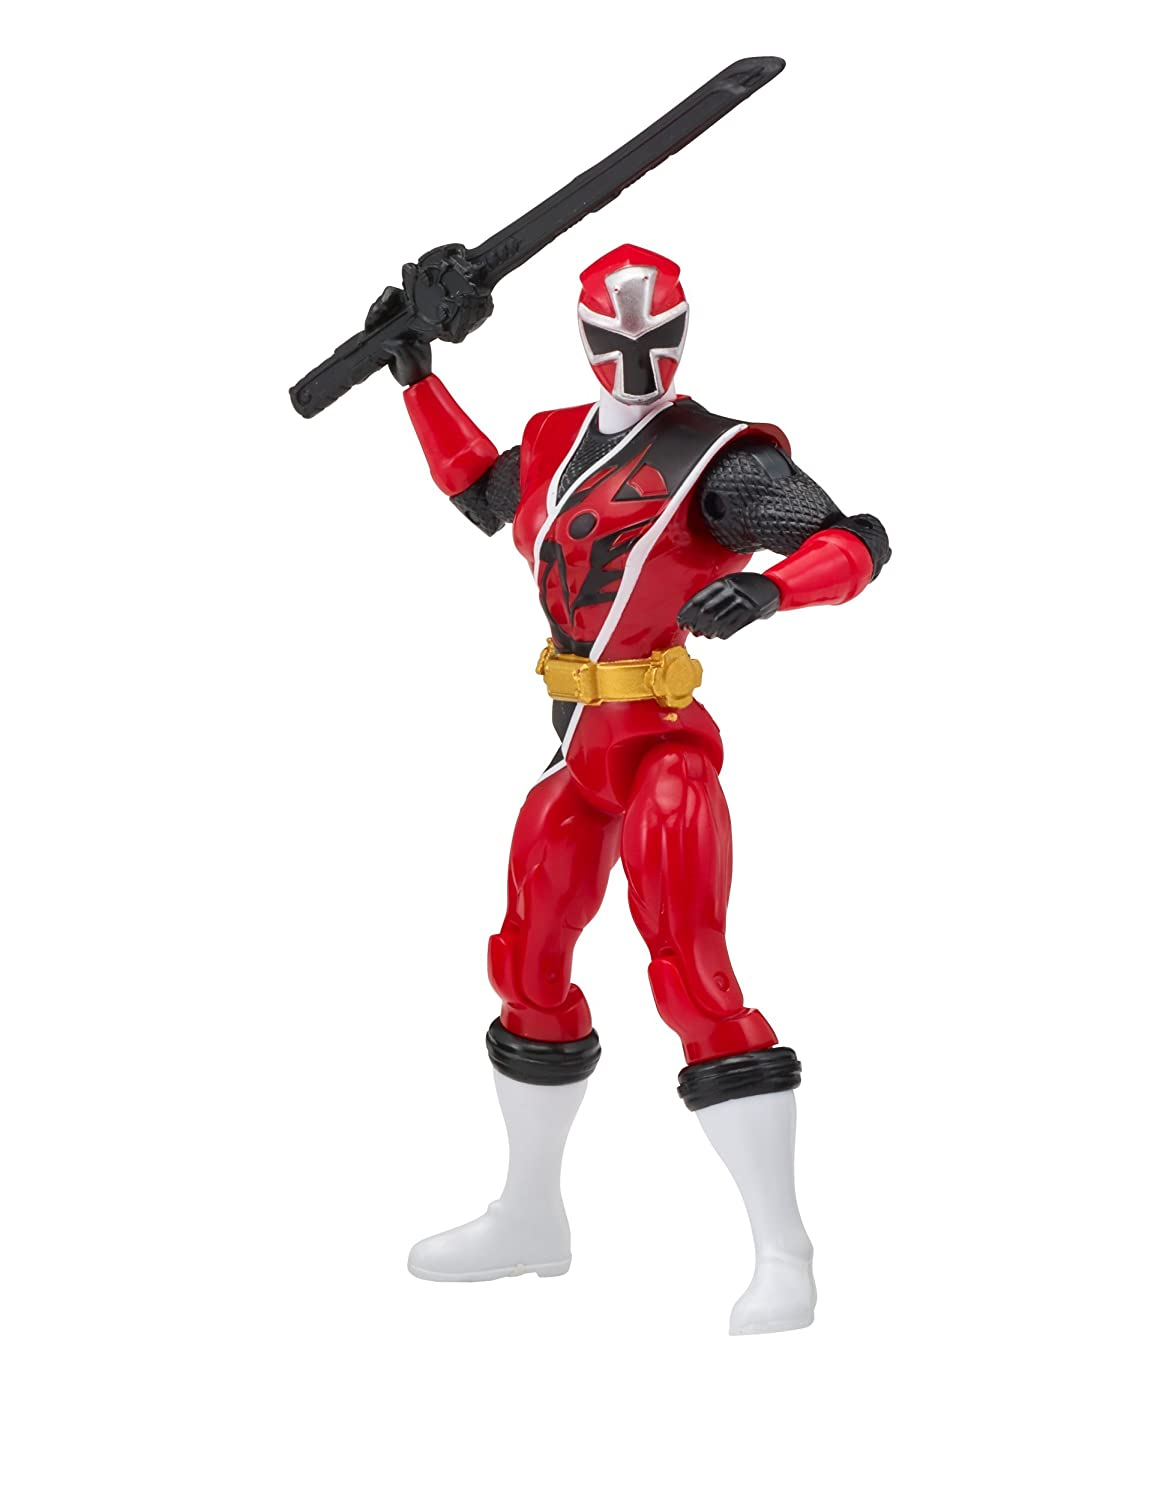 Power Rangers Super Ninja Steel Hero Action Figure, Red Ranger